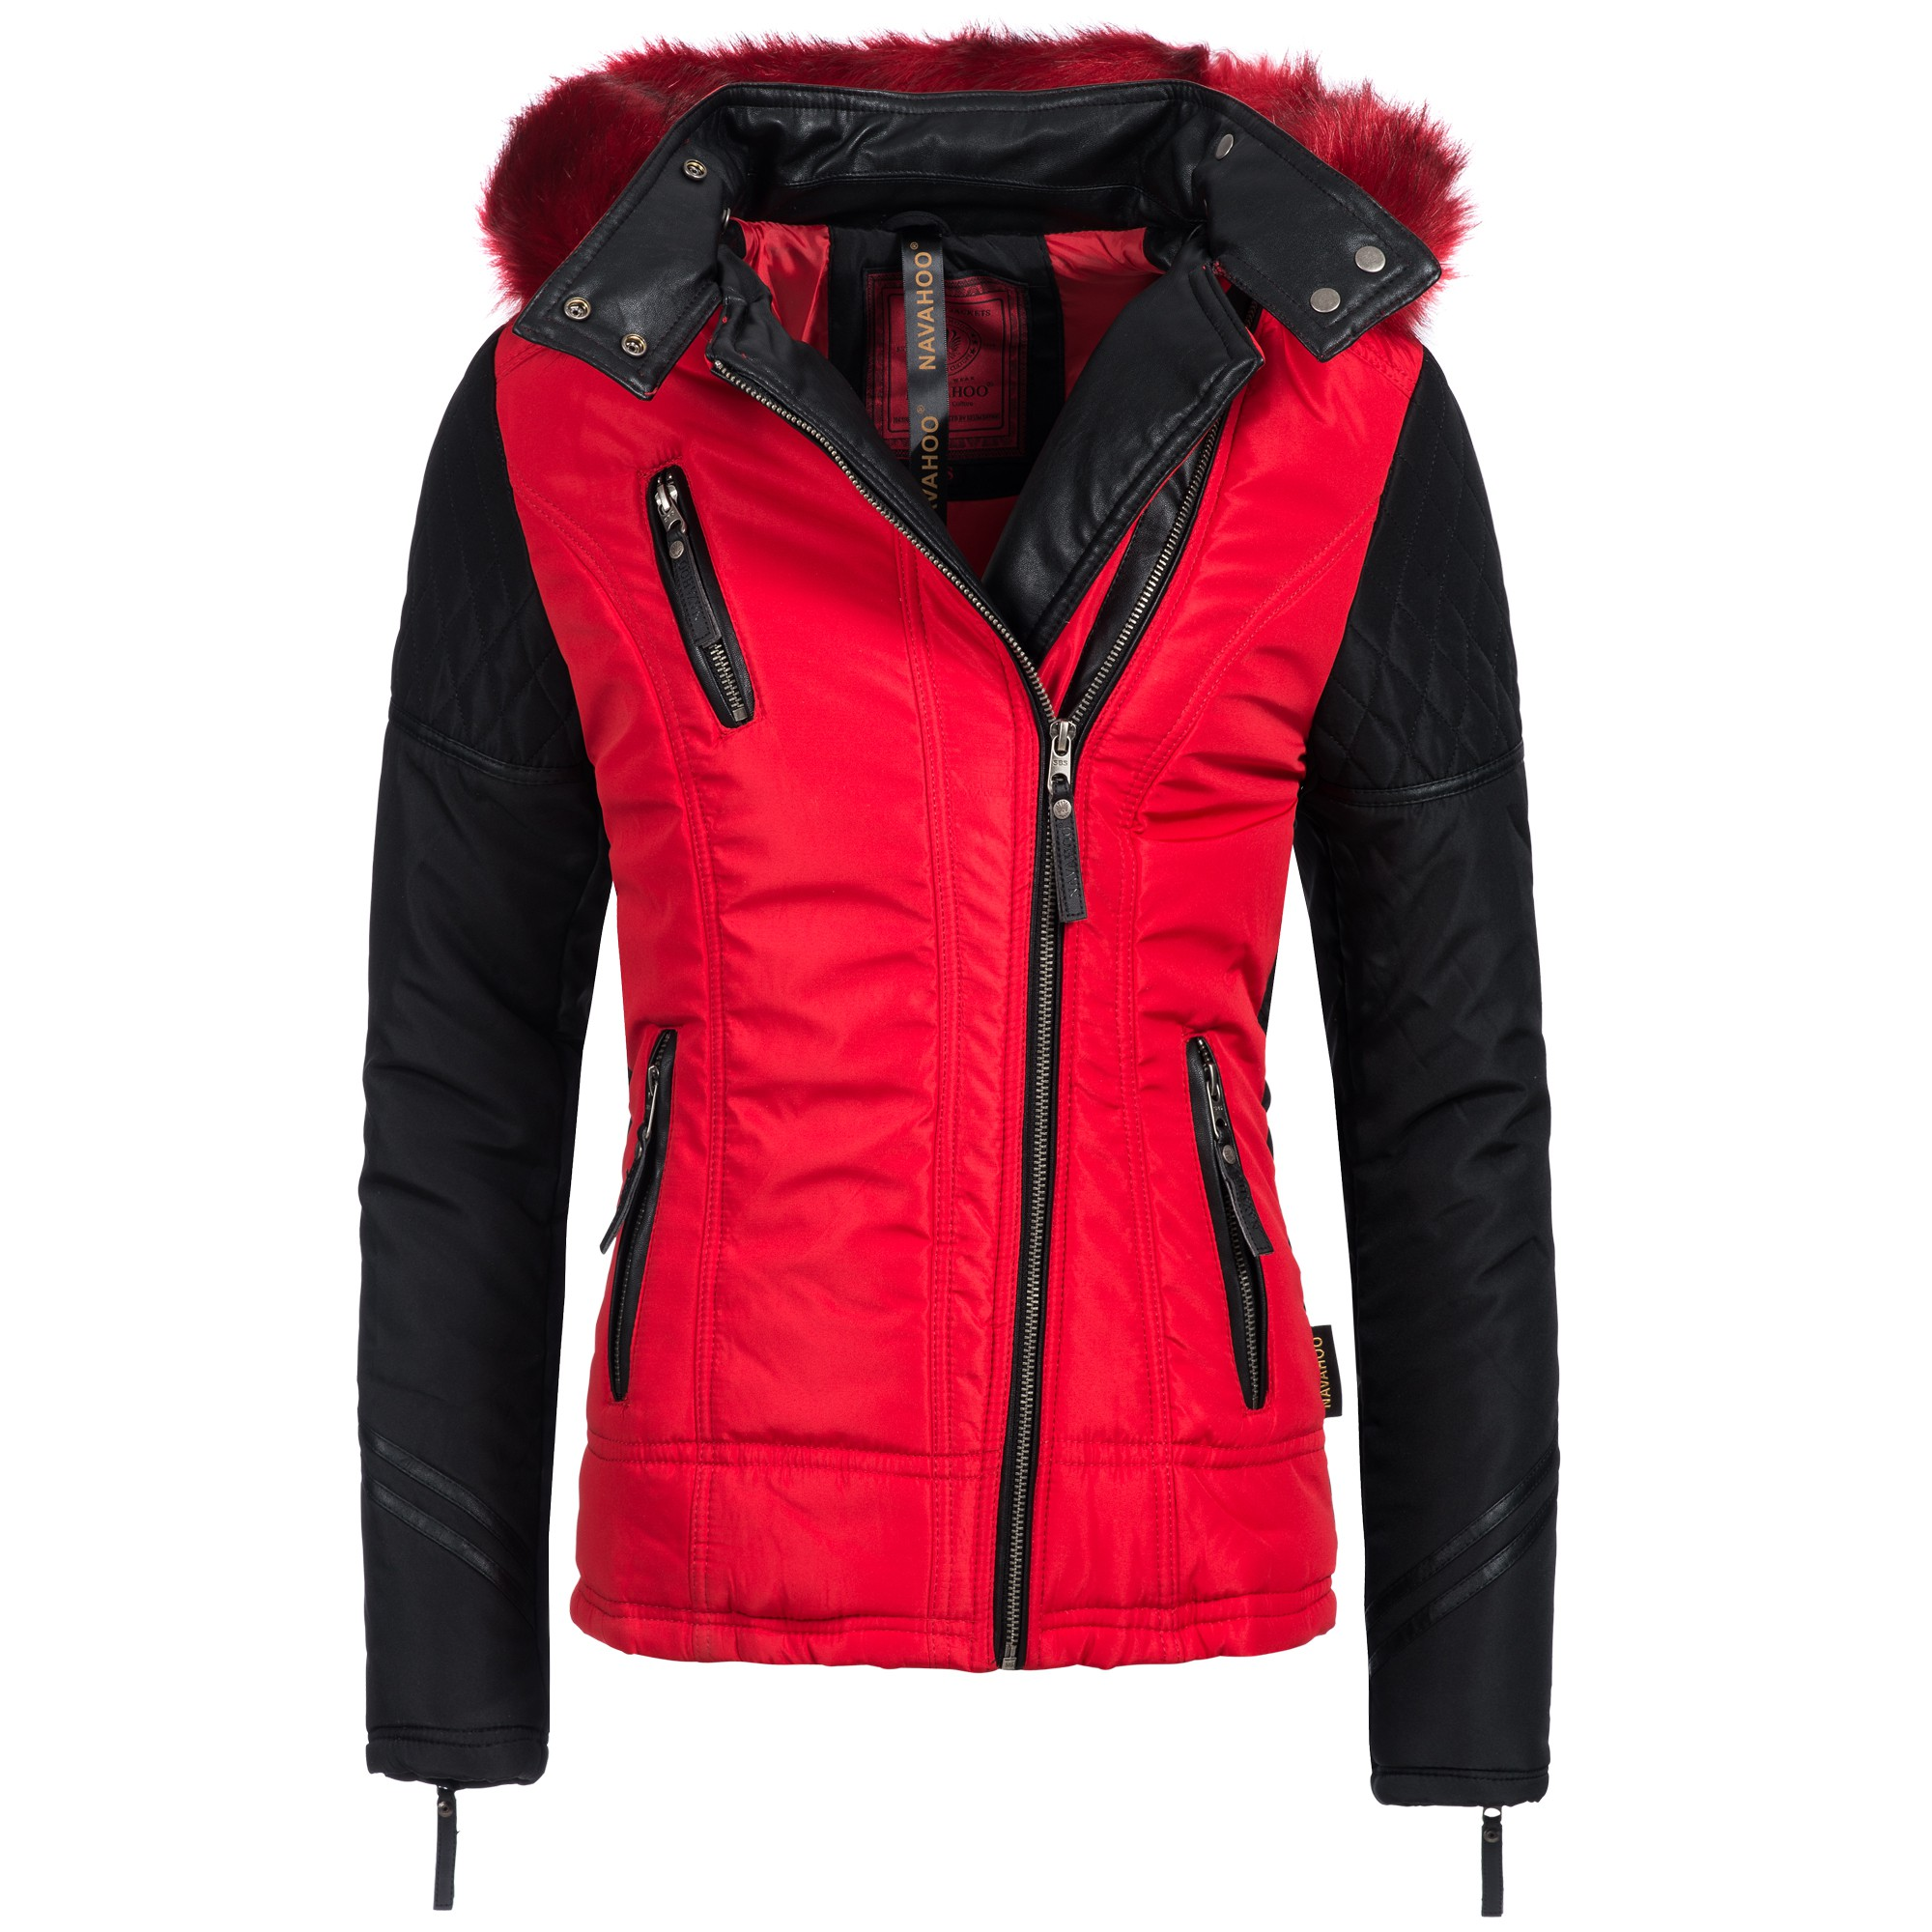 navahoo lissy damen jacke parka mantel winterjacke biker warm gef ttert ebay. Black Bedroom Furniture Sets. Home Design Ideas